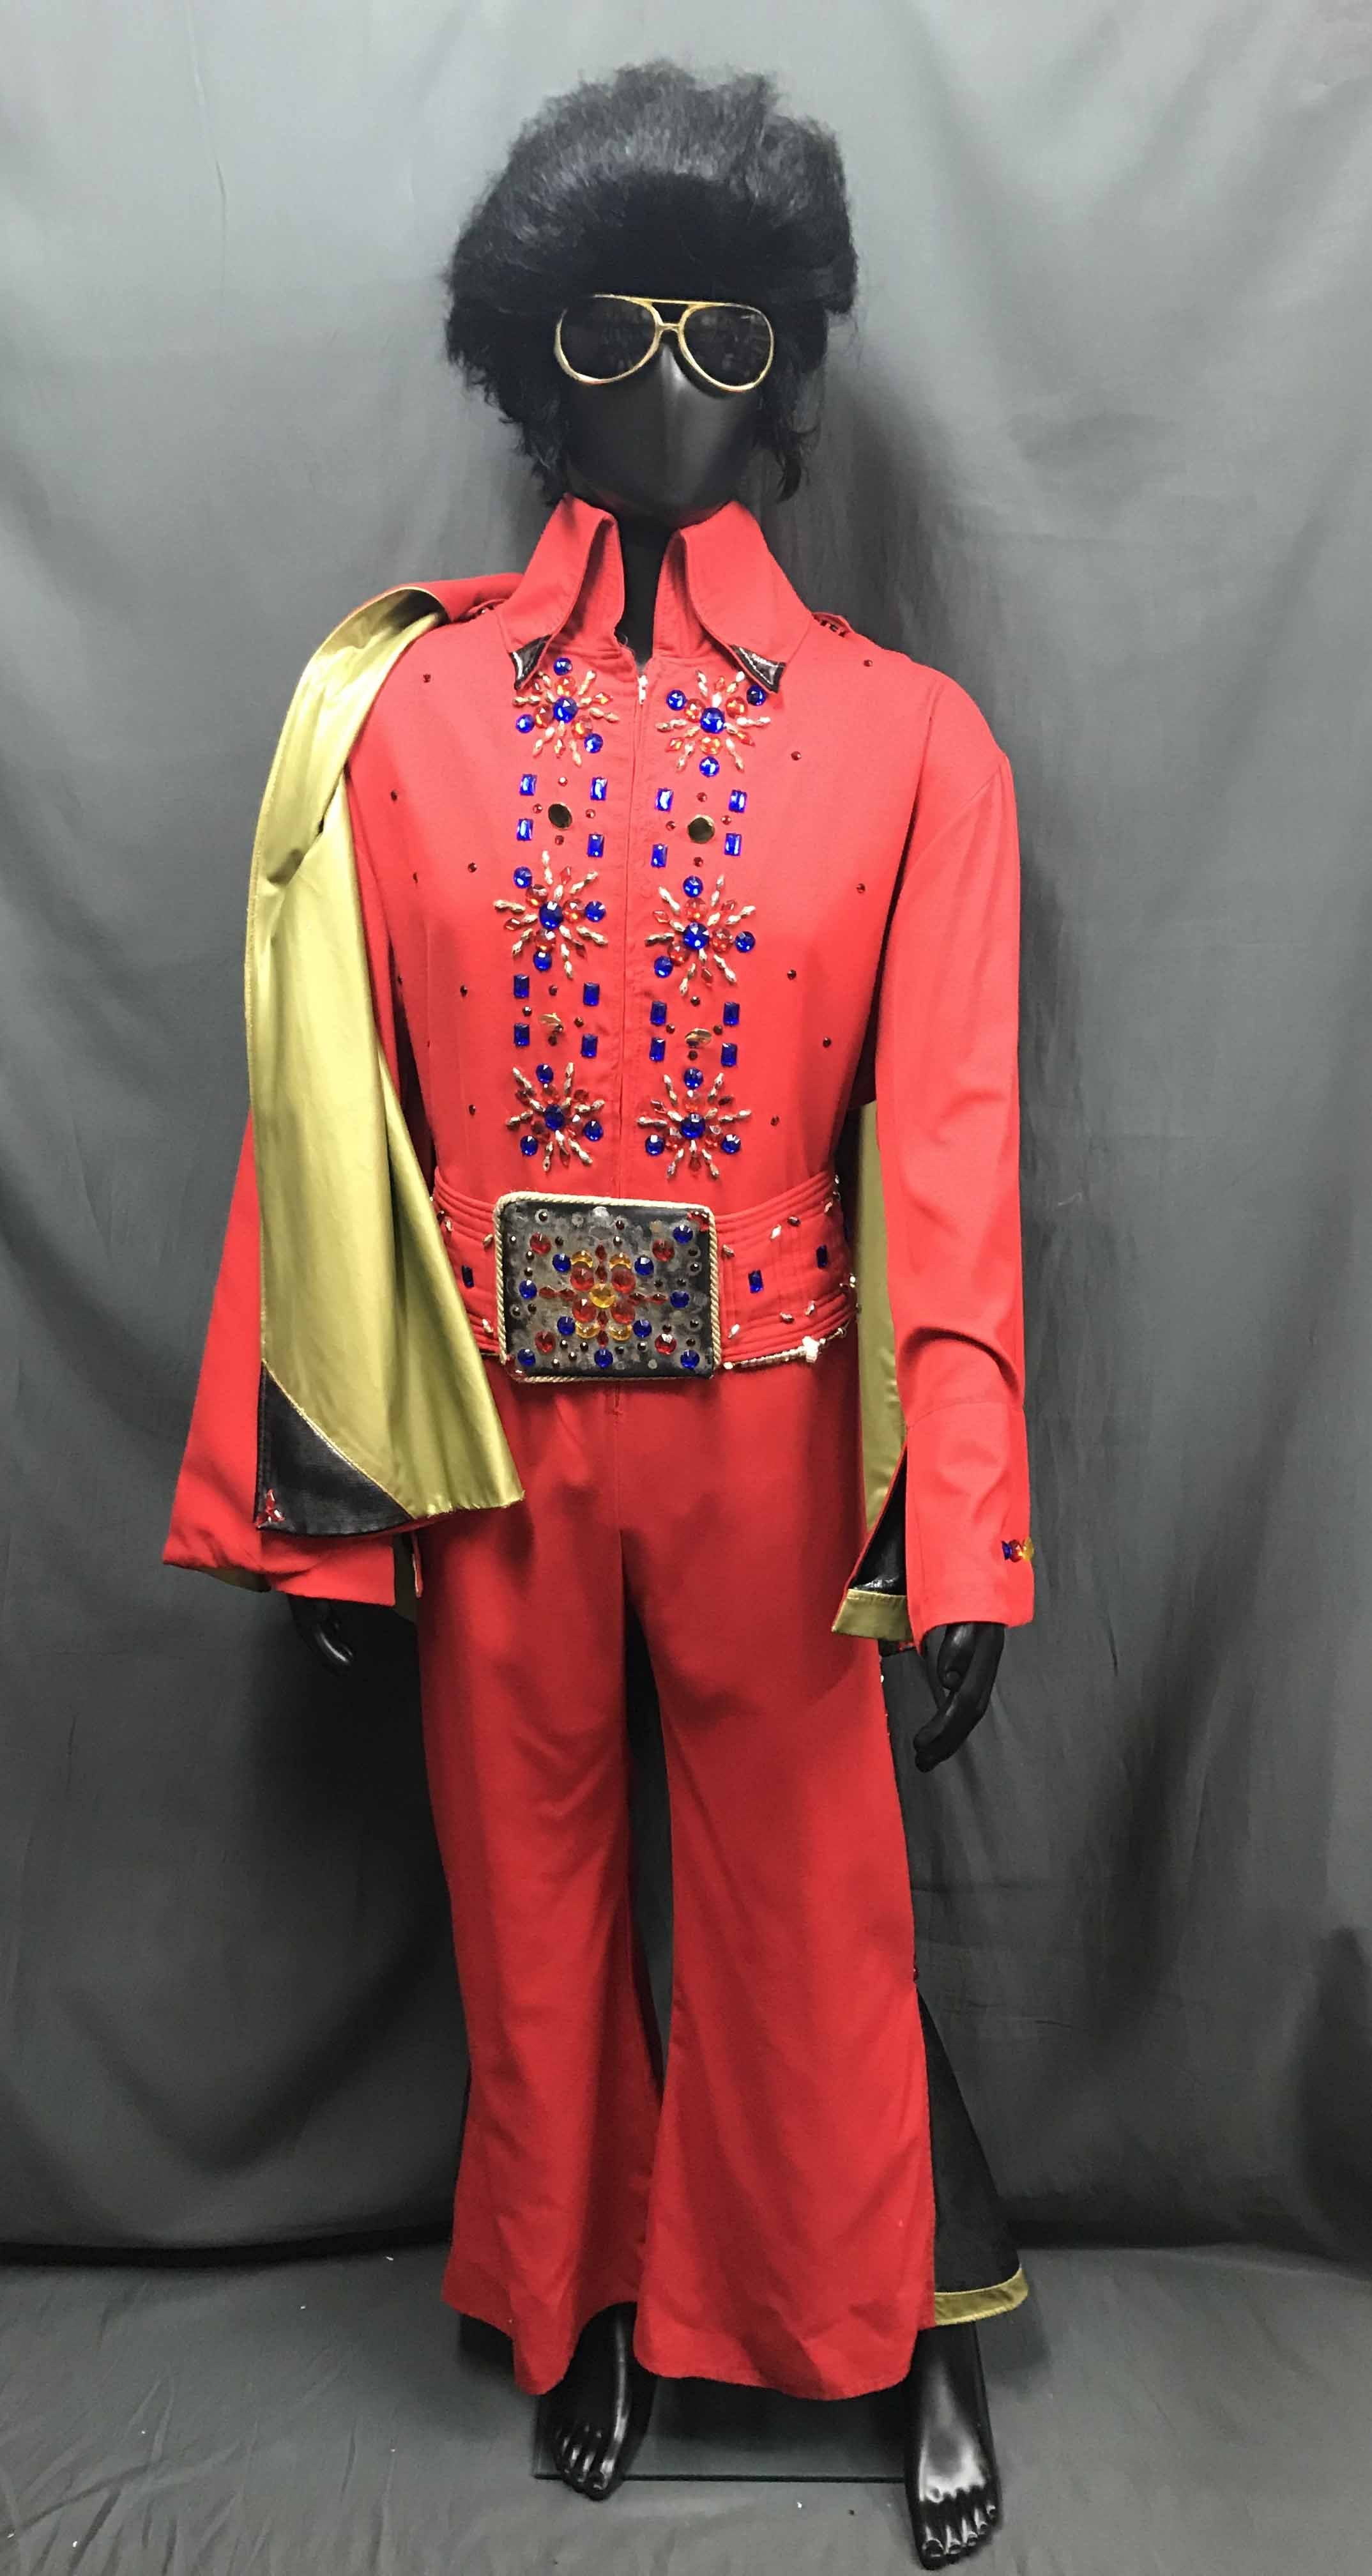 Full Red Elvis Style Jumpsuit - Hire - The Costume Company | Fancy Dress Costumes Hire and Purchase Brisbane and Australia